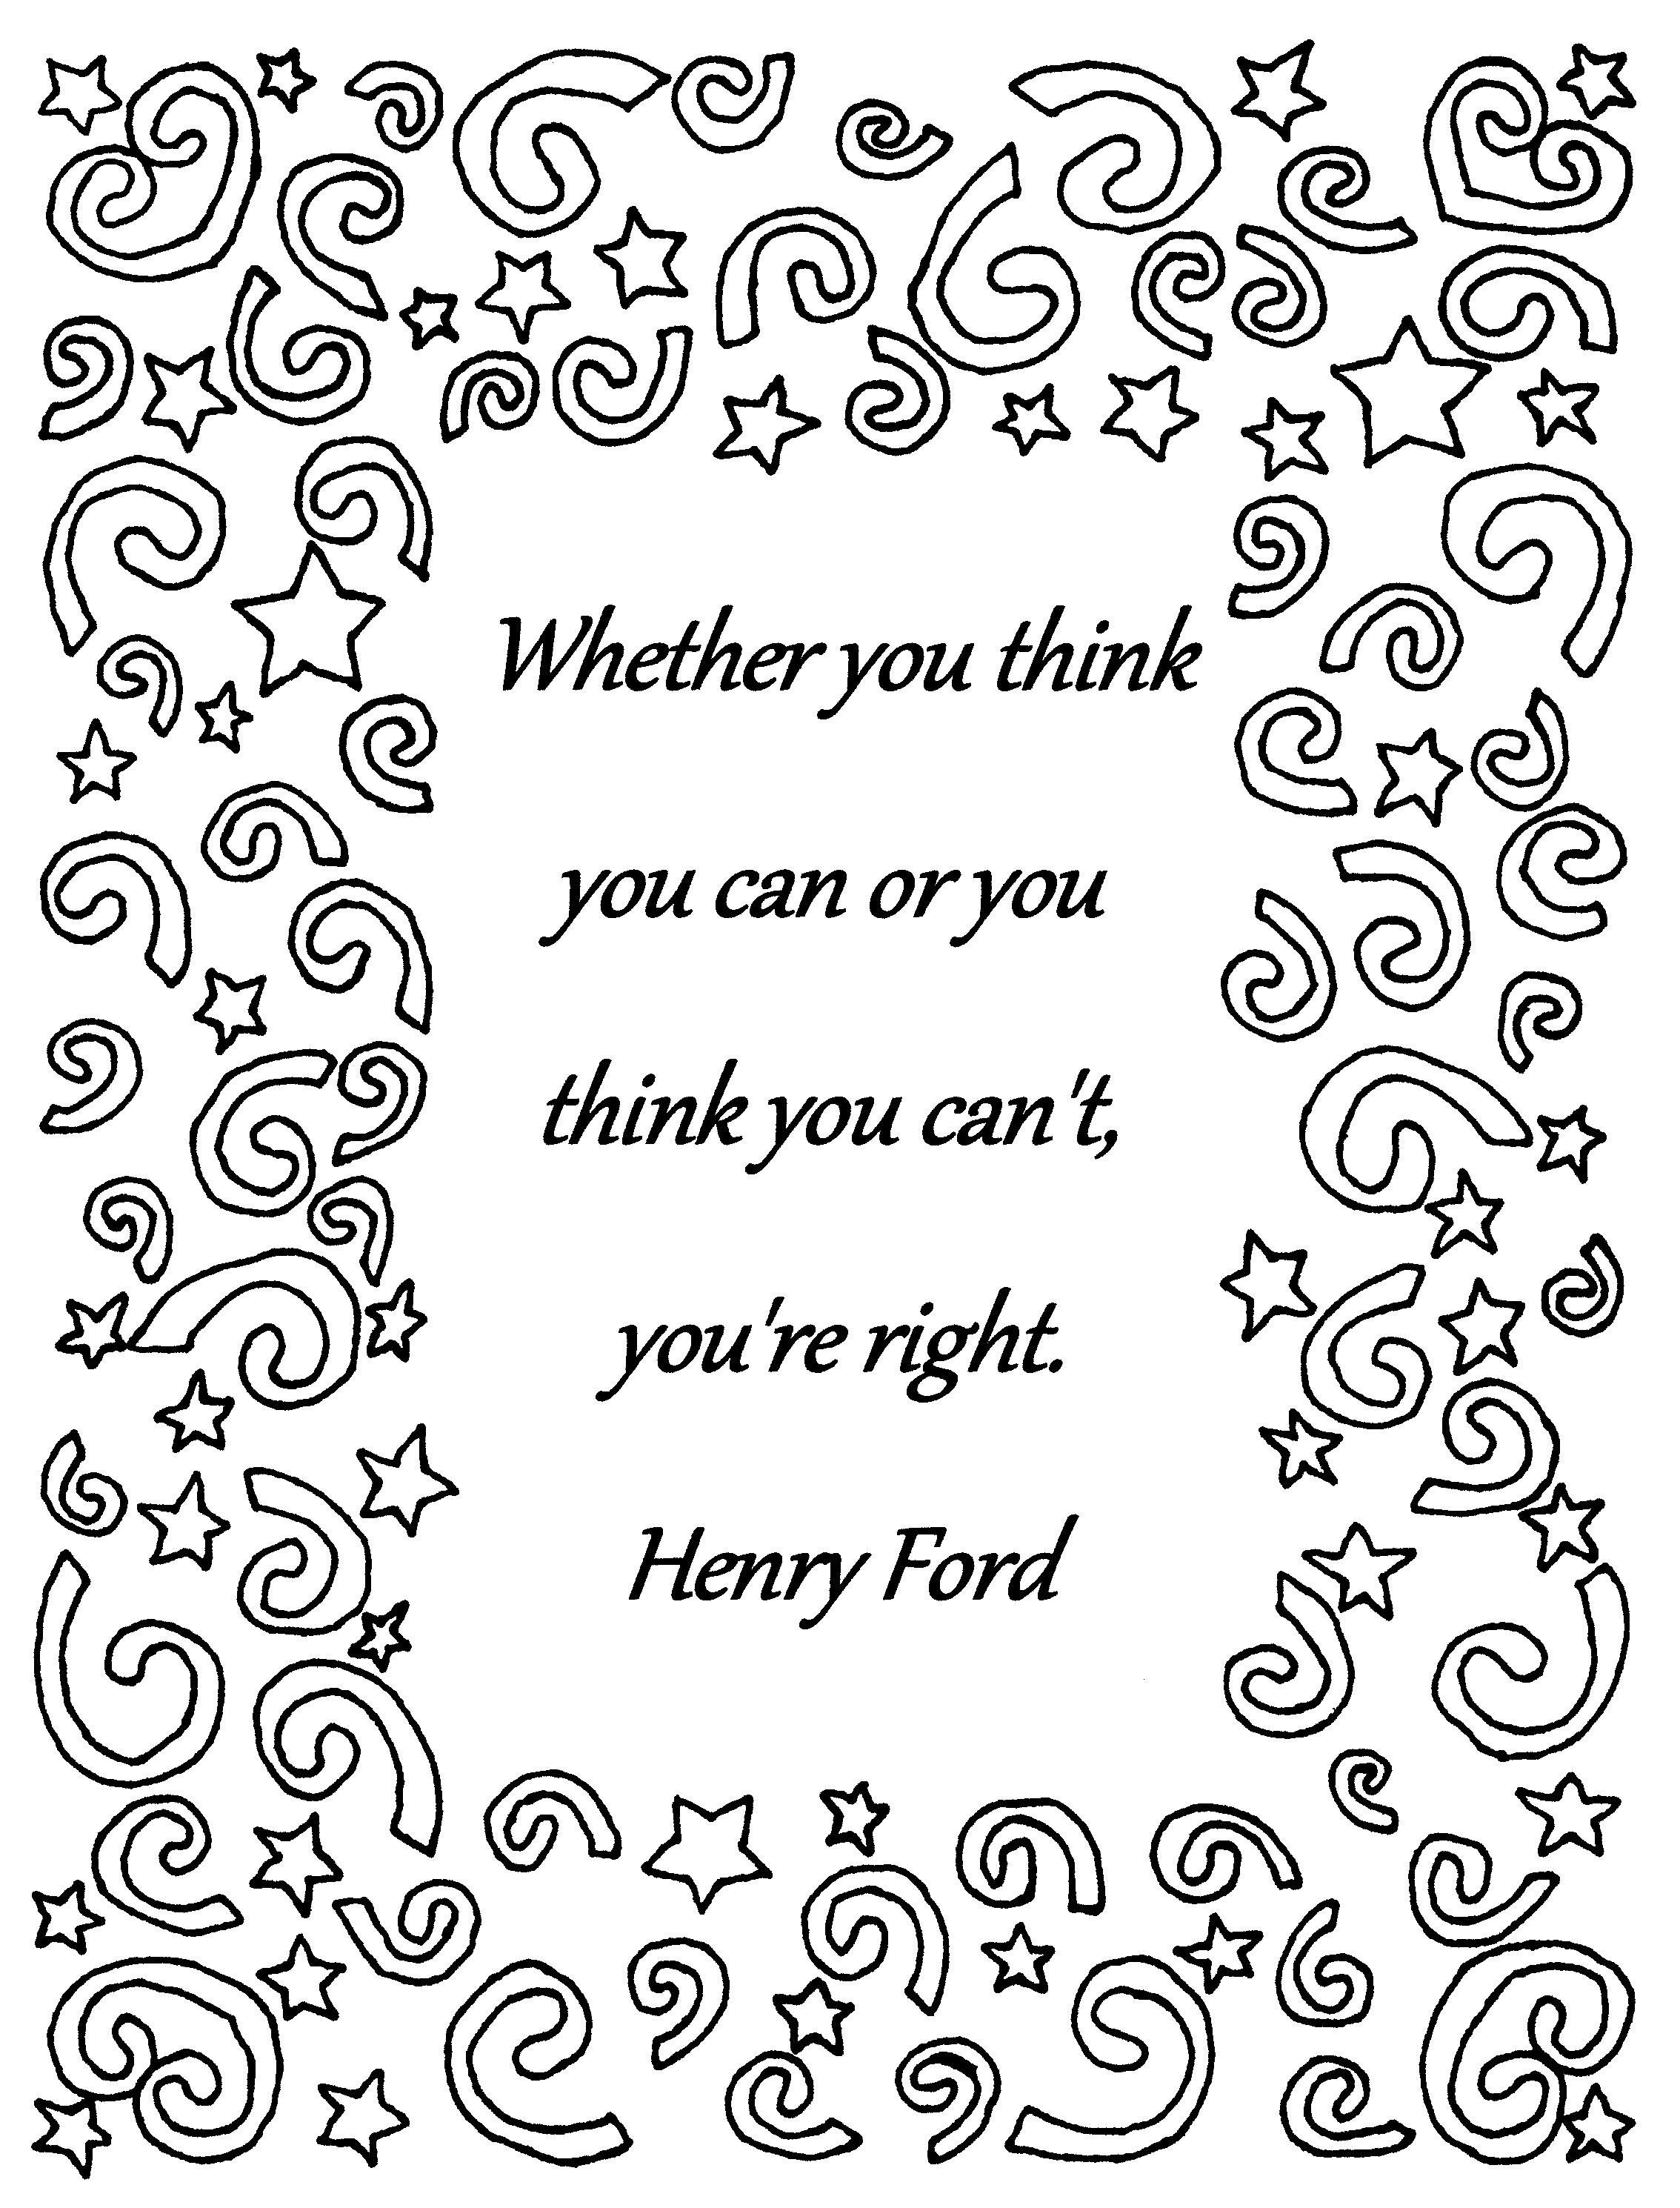 Whether You Think You Can Henry Ford Quote Coloring Page Download